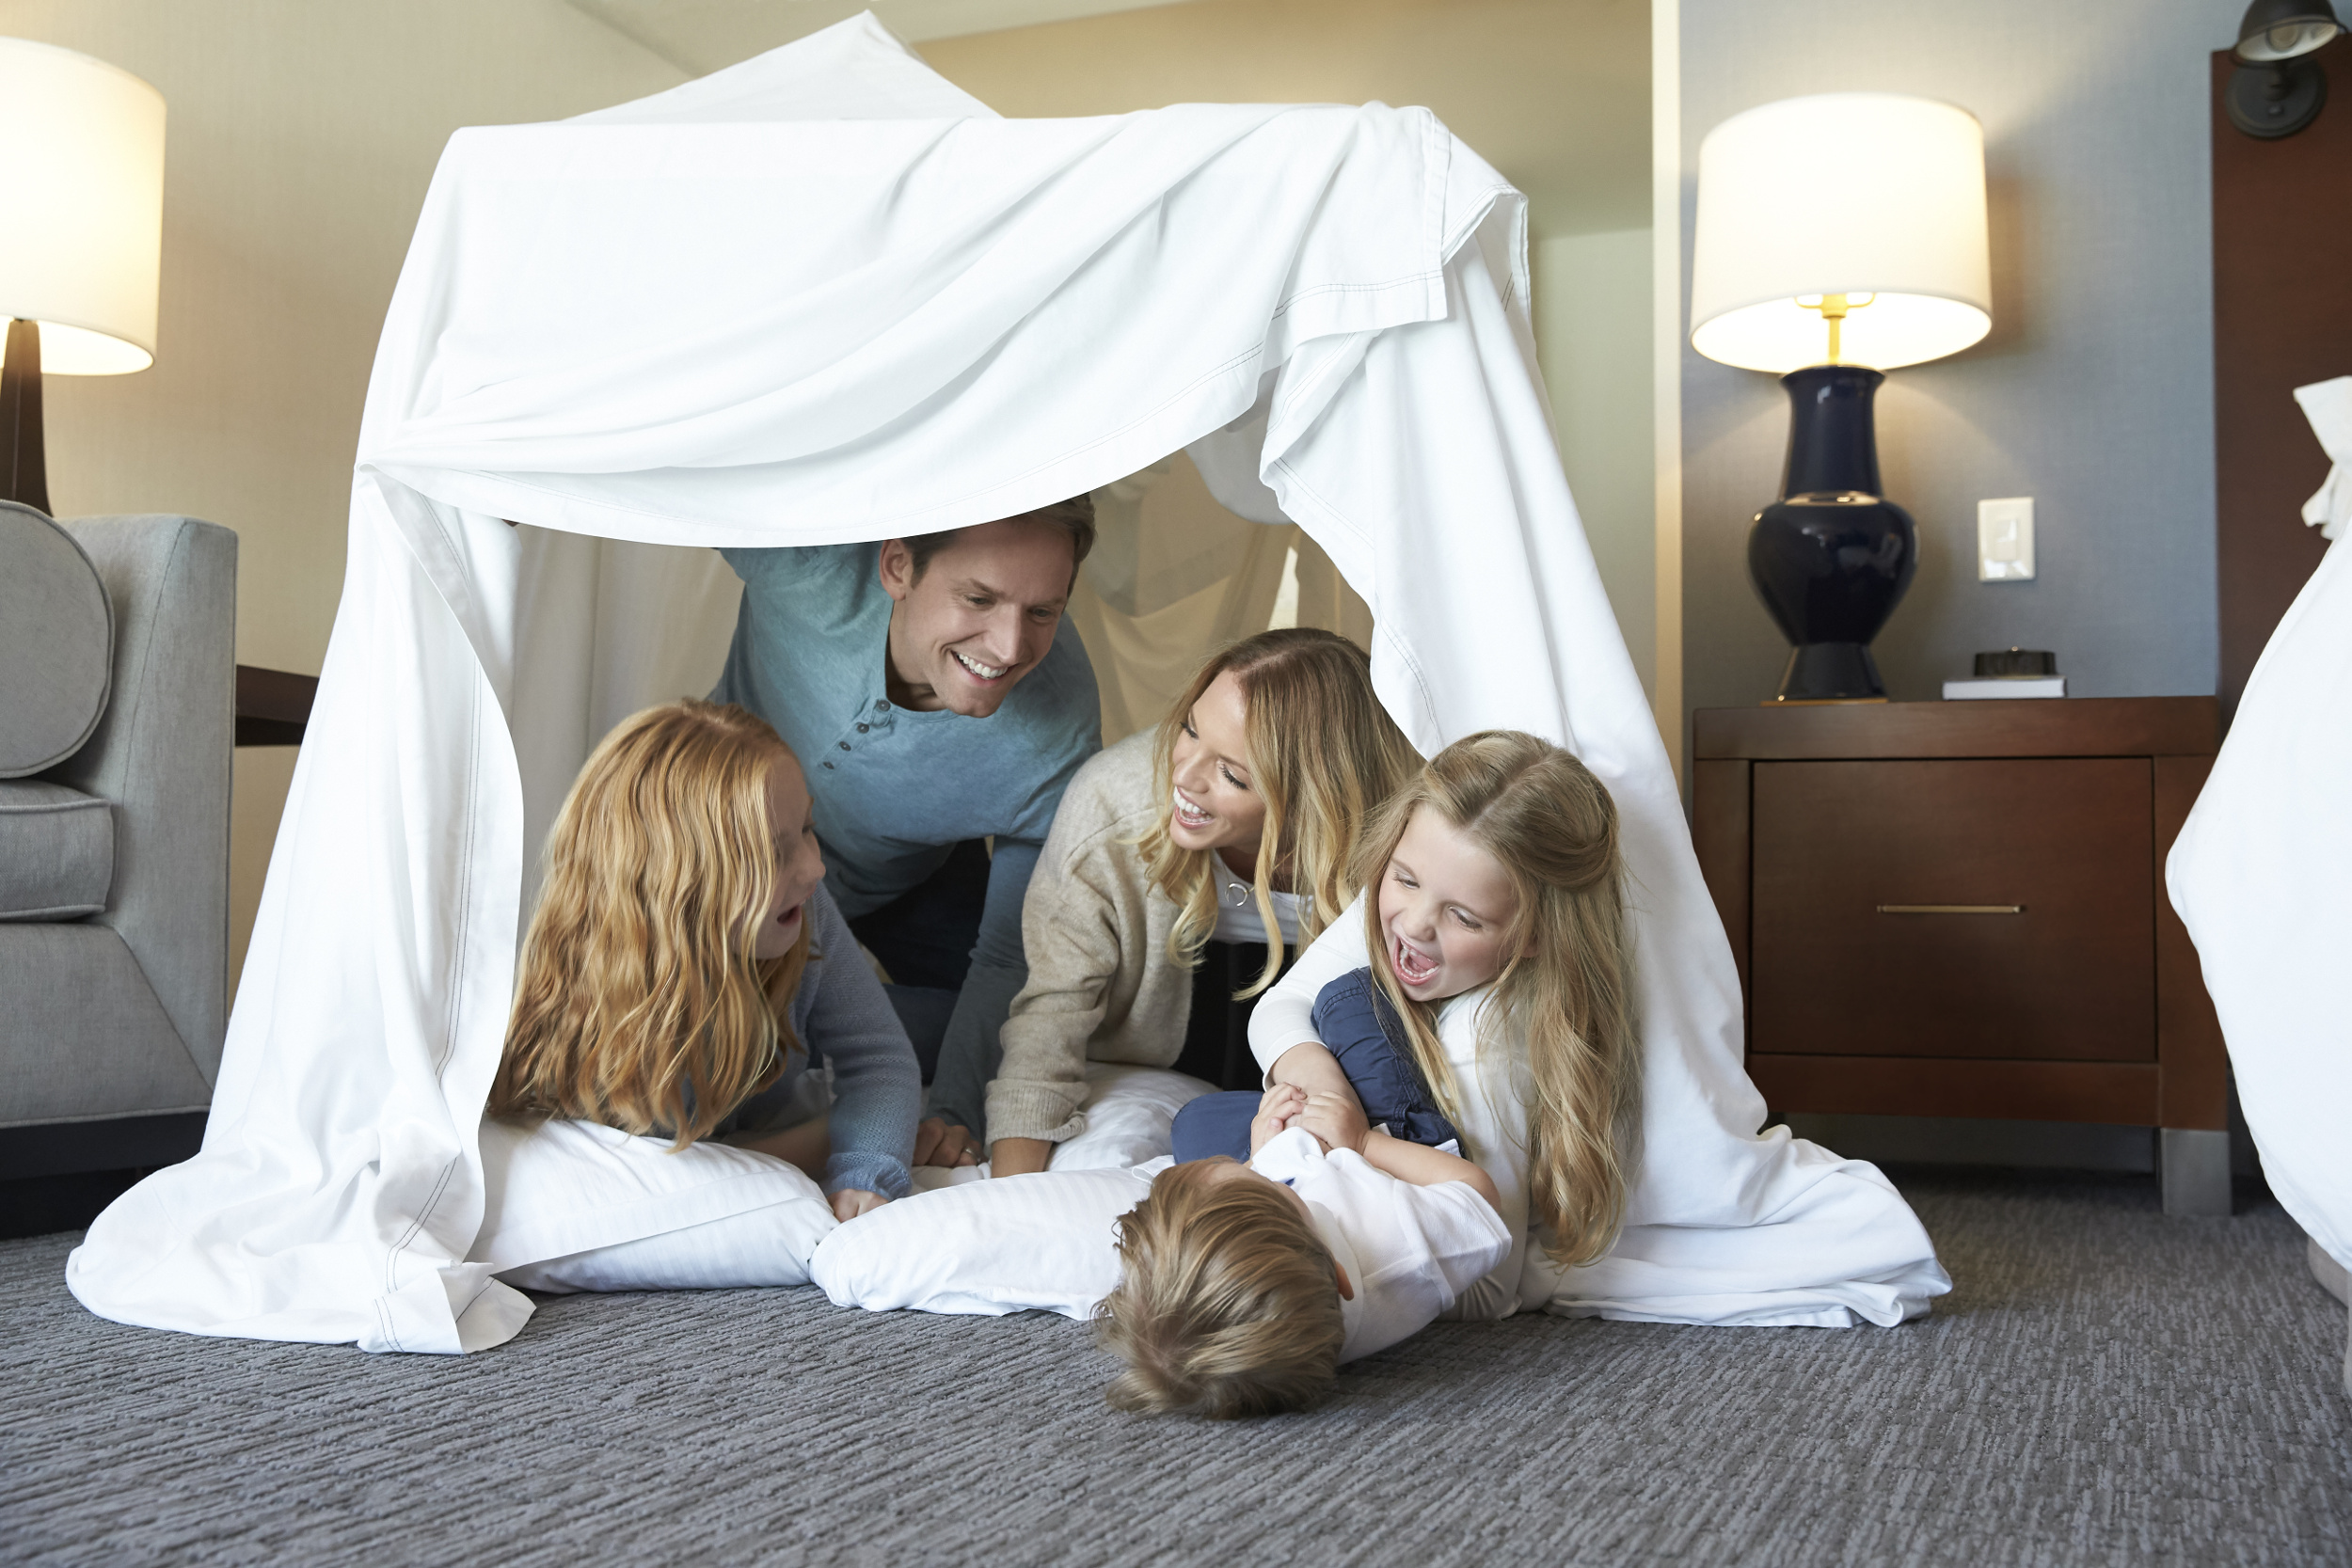 Families can make blanket forts in their rooms as part of the offer.